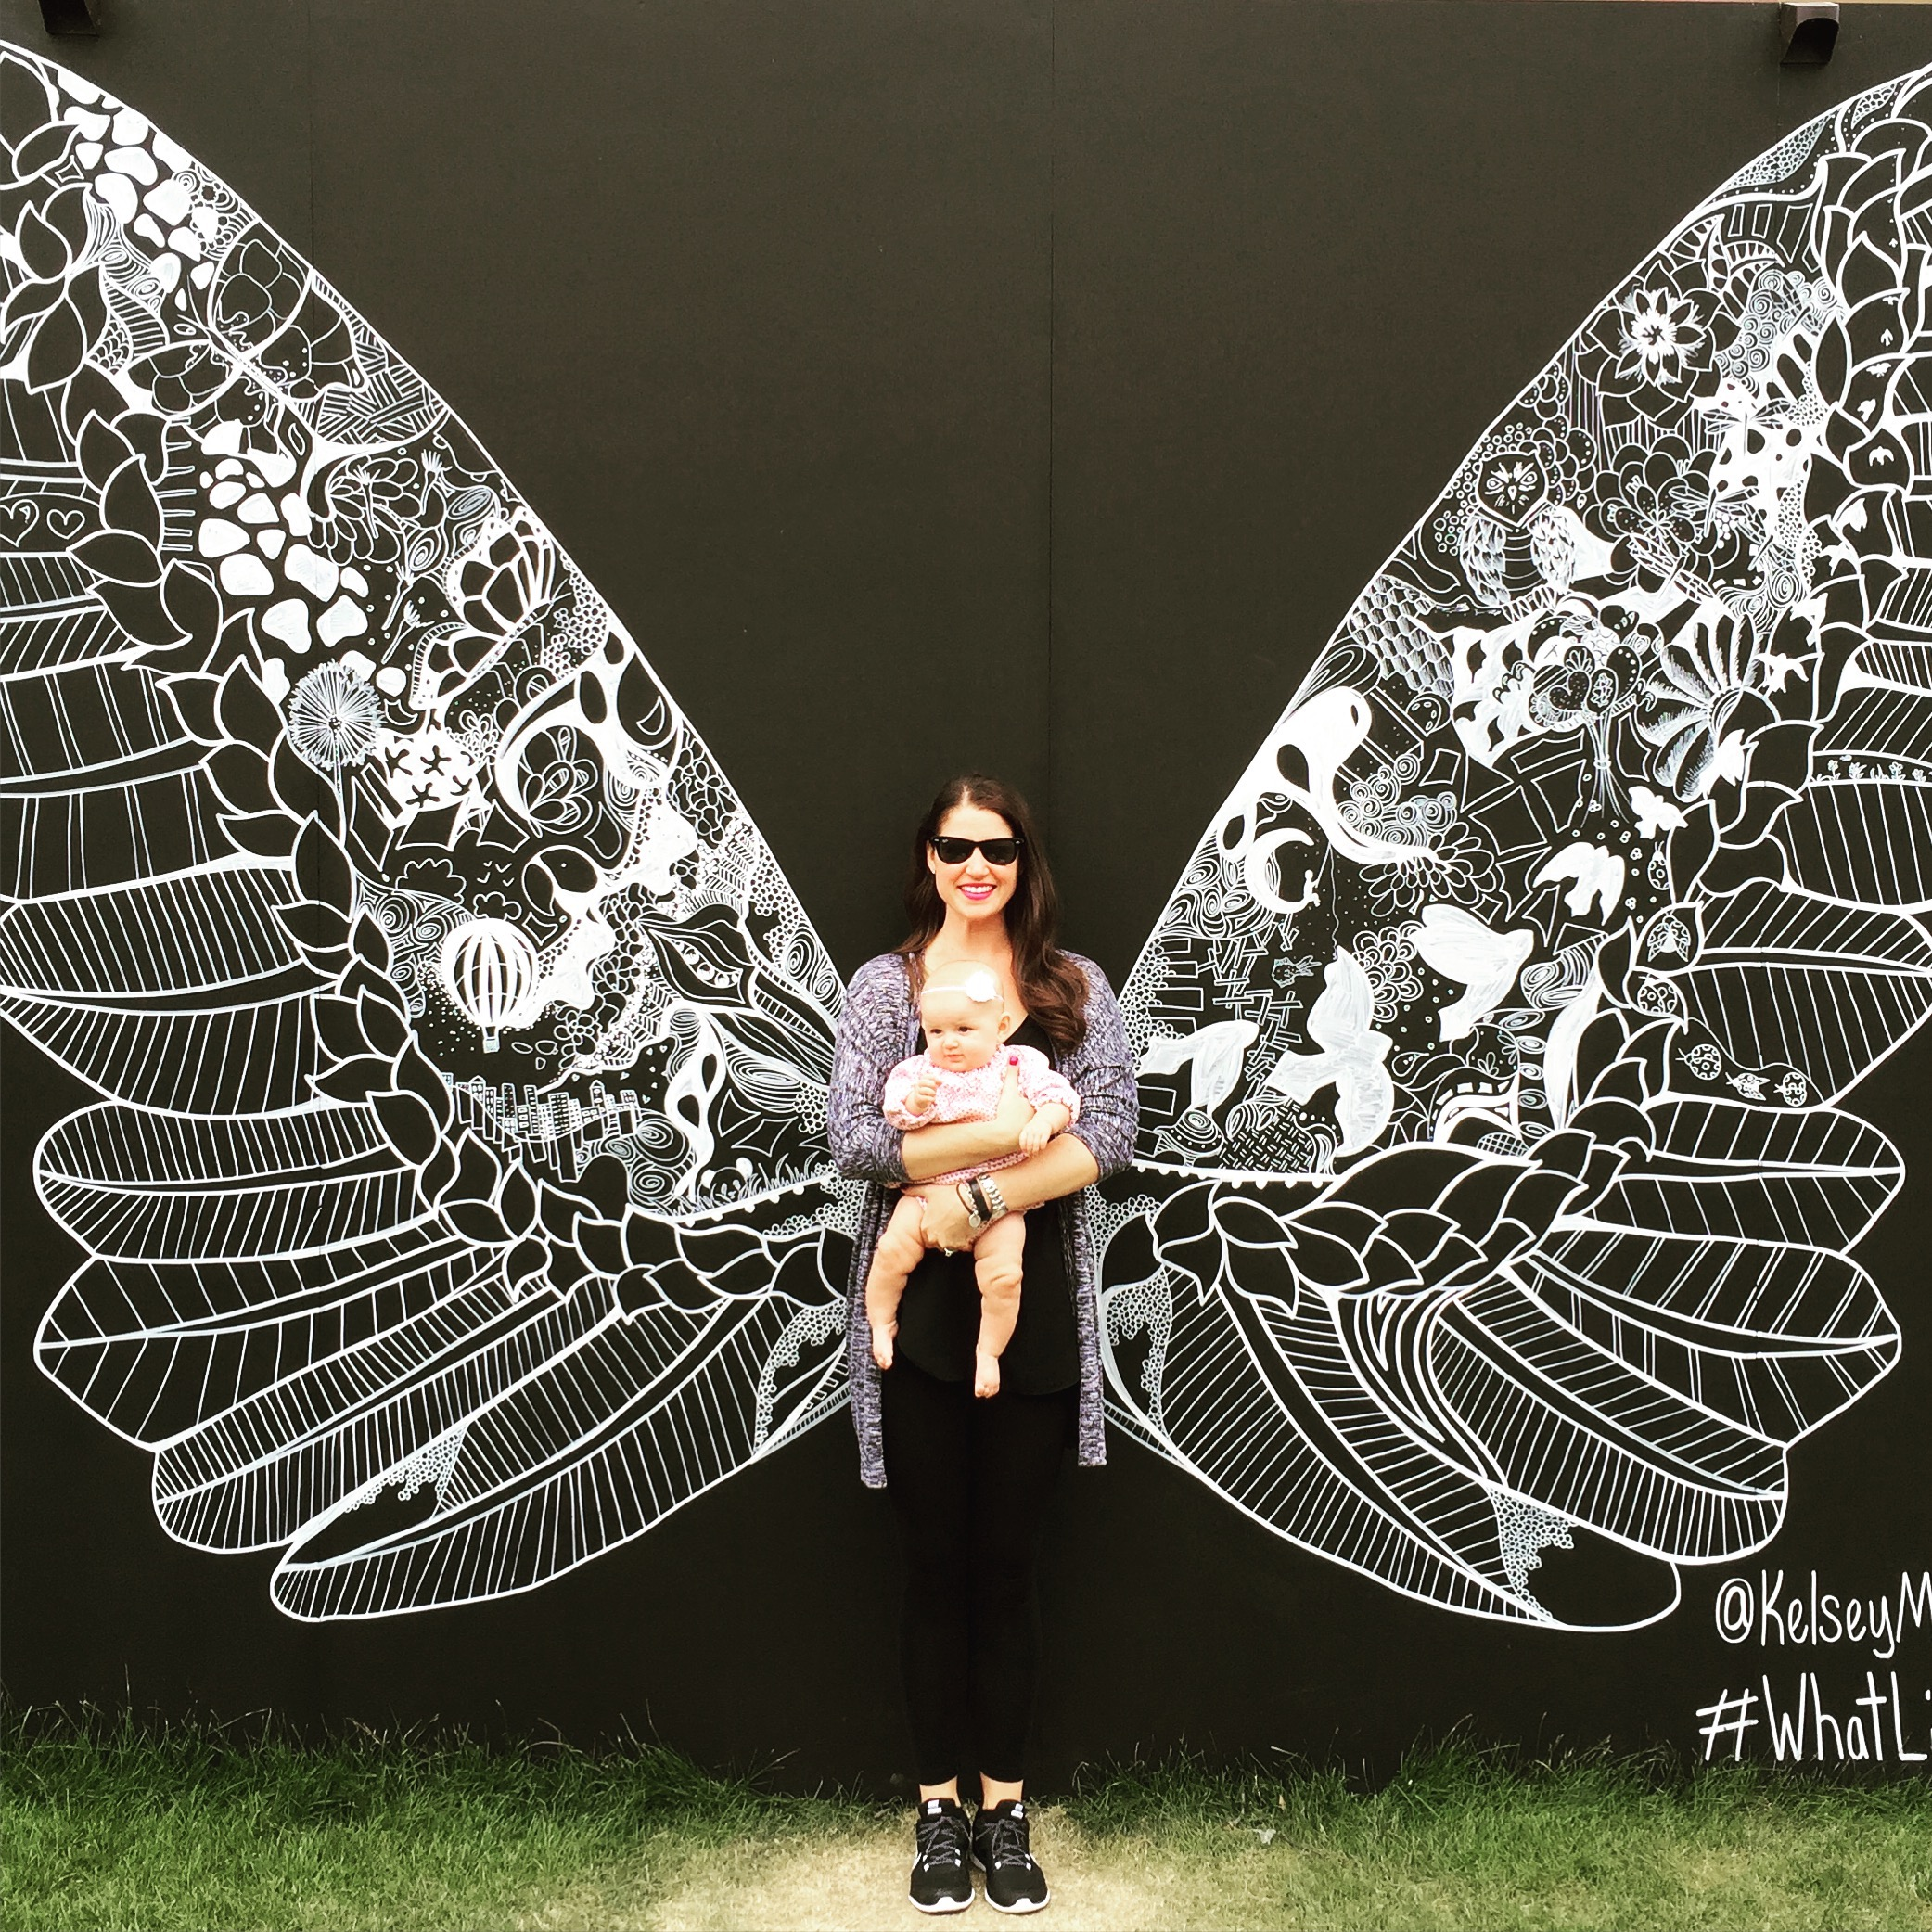 Me and Natalie exploring ArtPrize this past weekend. Pay special attention to Nat's leg rolls :) This photo cuts it off, but the art work is #WhatLiftsYou by @KelseyMontagueArt.